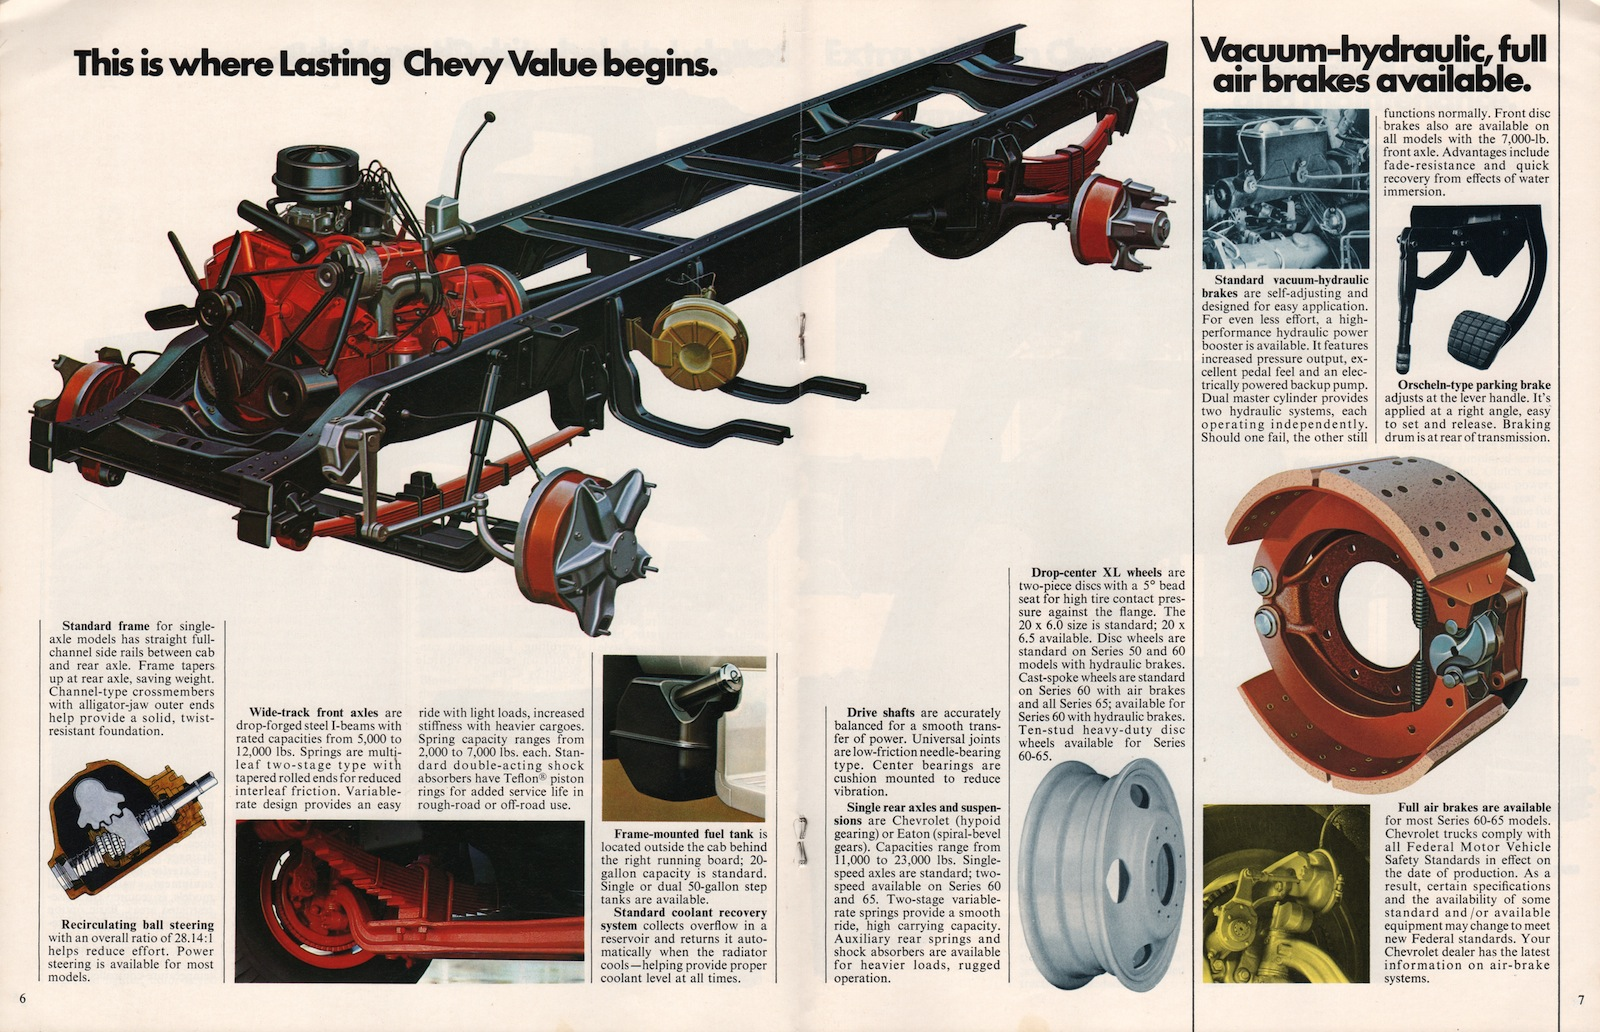 Gm 1976 Medium Duty Chevy Truck Sales Brochure Fuel System Company Marks Emblems And Designs Are Trademarks Or Service Of Please Respect The Time It Took To Acquire These Brochures